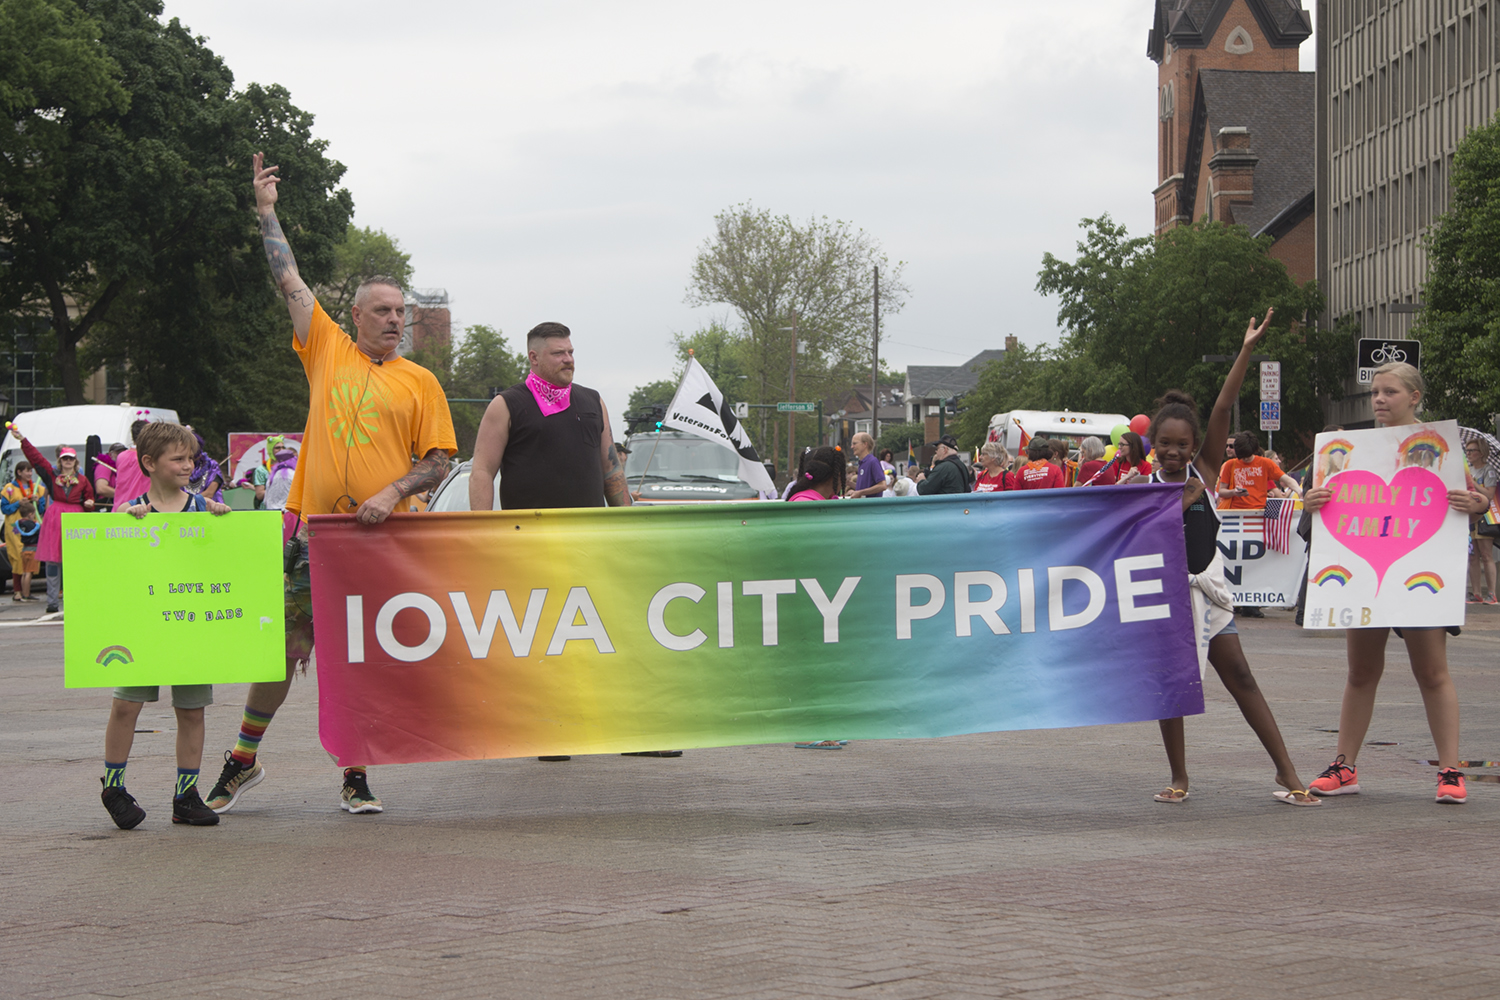 Paul and Chad Clark prepare to lead the Iowa City Pride parade as a family at Iowa City Pride on Saturday, June 15, 2019.